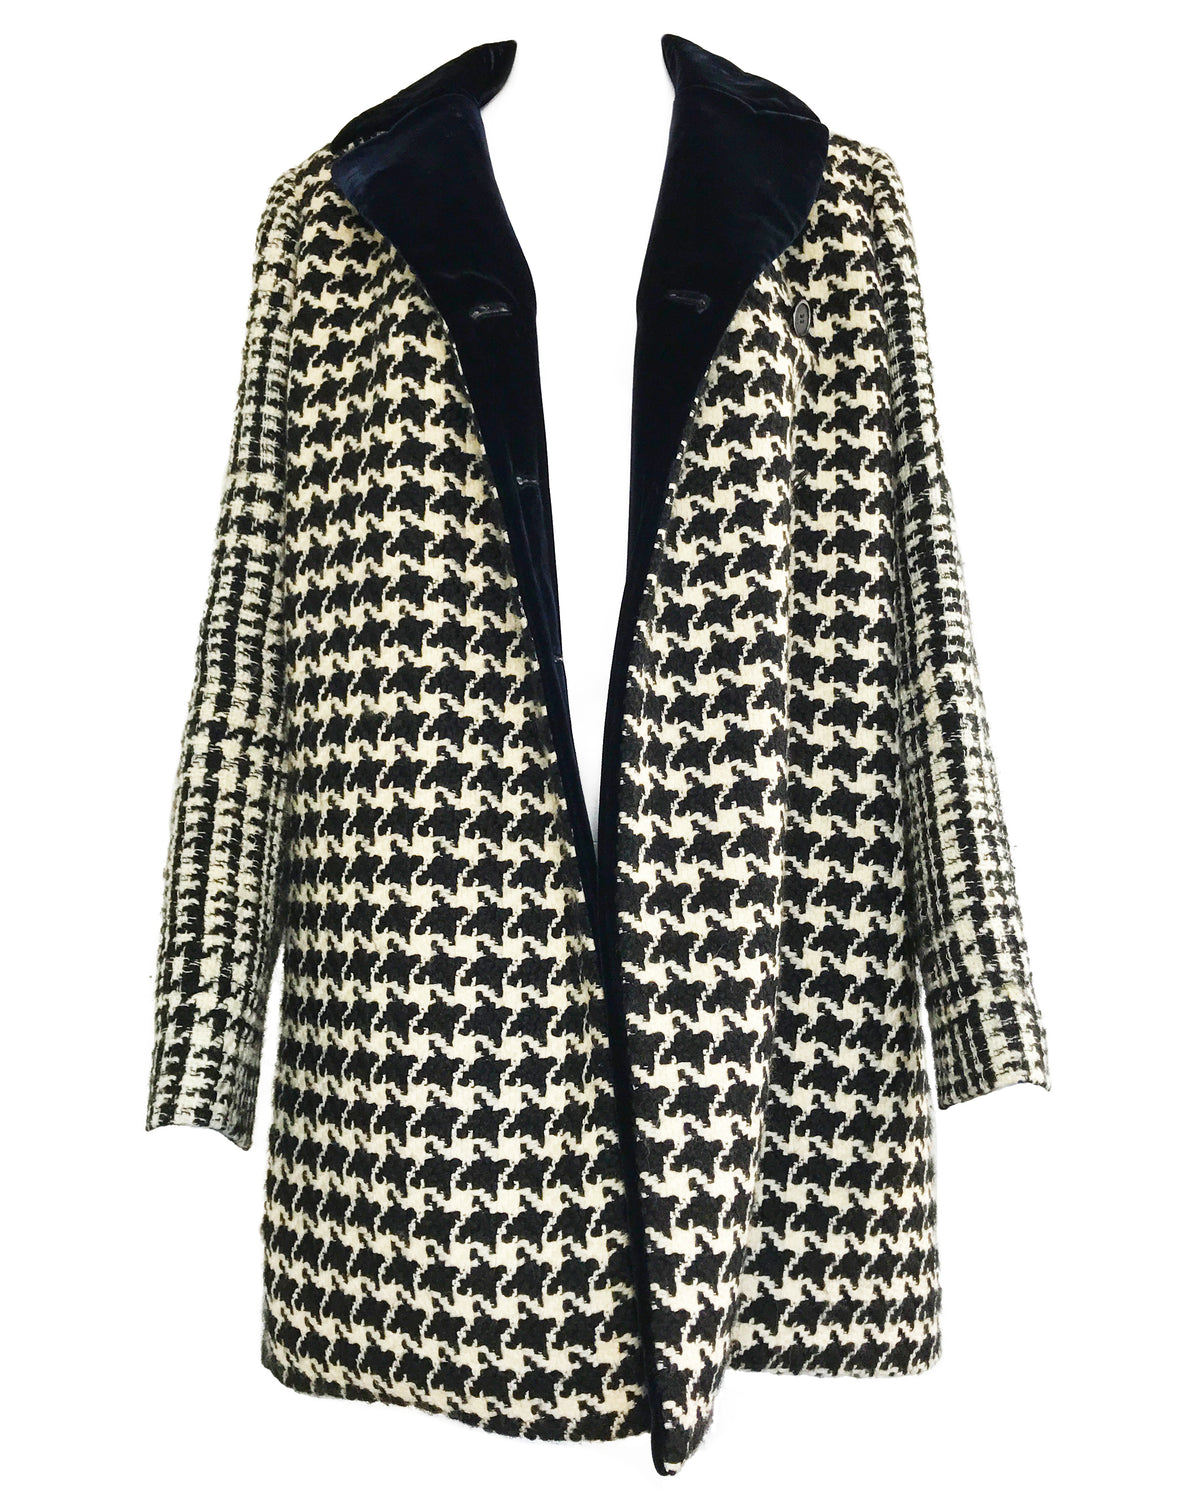 Fruit Vintage Christian Dior Houndstooth Coat by Raf Simons